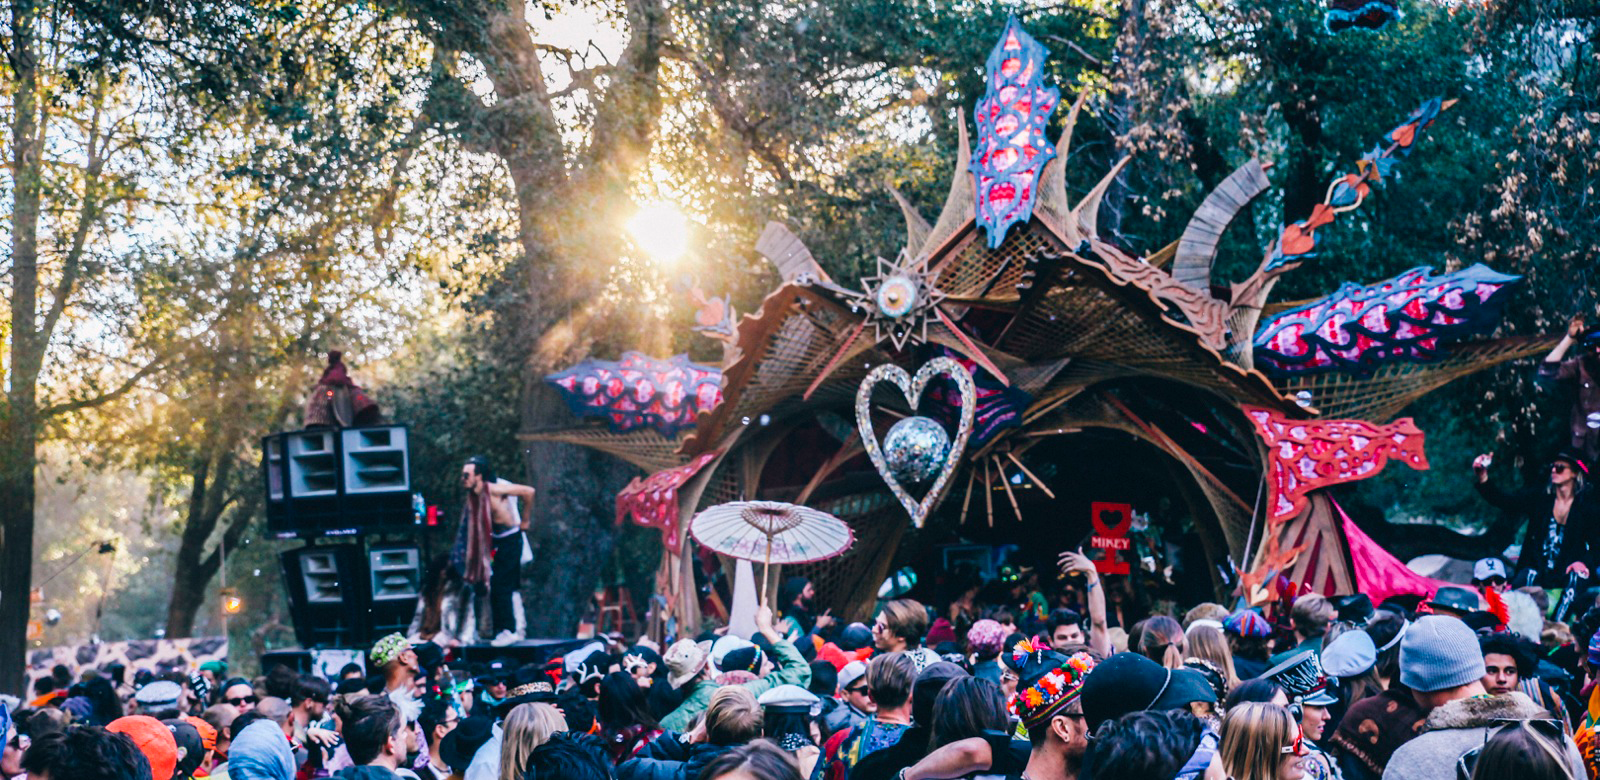 Desert Hearts Festival 2020.Desert Hearts Crew Gear Up For 2 Epic Weekends In Cali Then